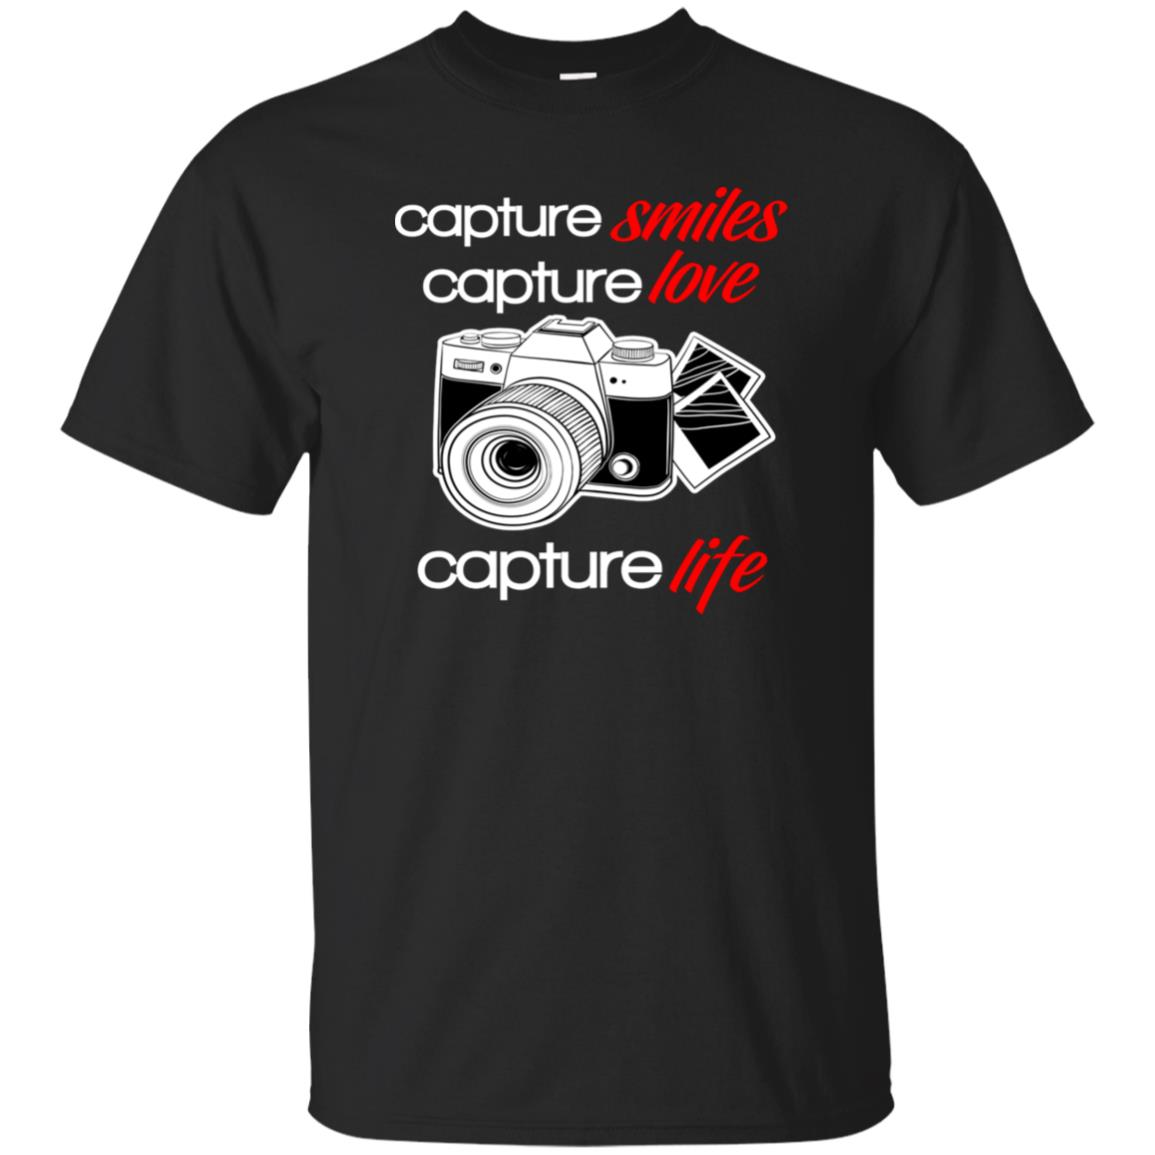 Capture Smiles Love Life Photography With Camera Unisex Short Sleeve